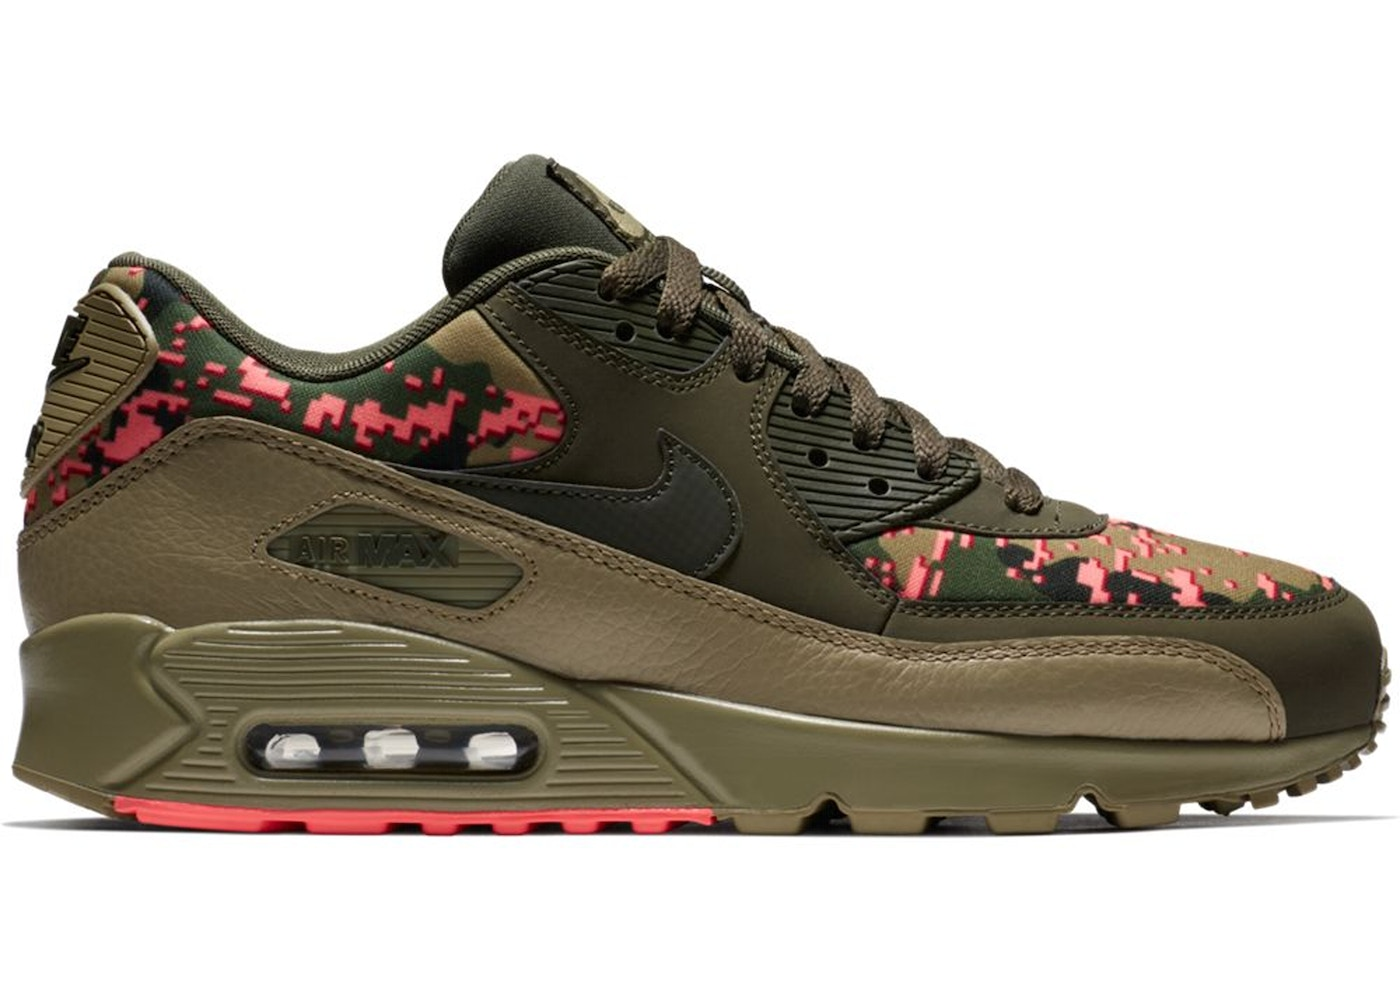 low priced 696b1 fd297 Air Max 90 Digi Camo Olive - AH8440-300